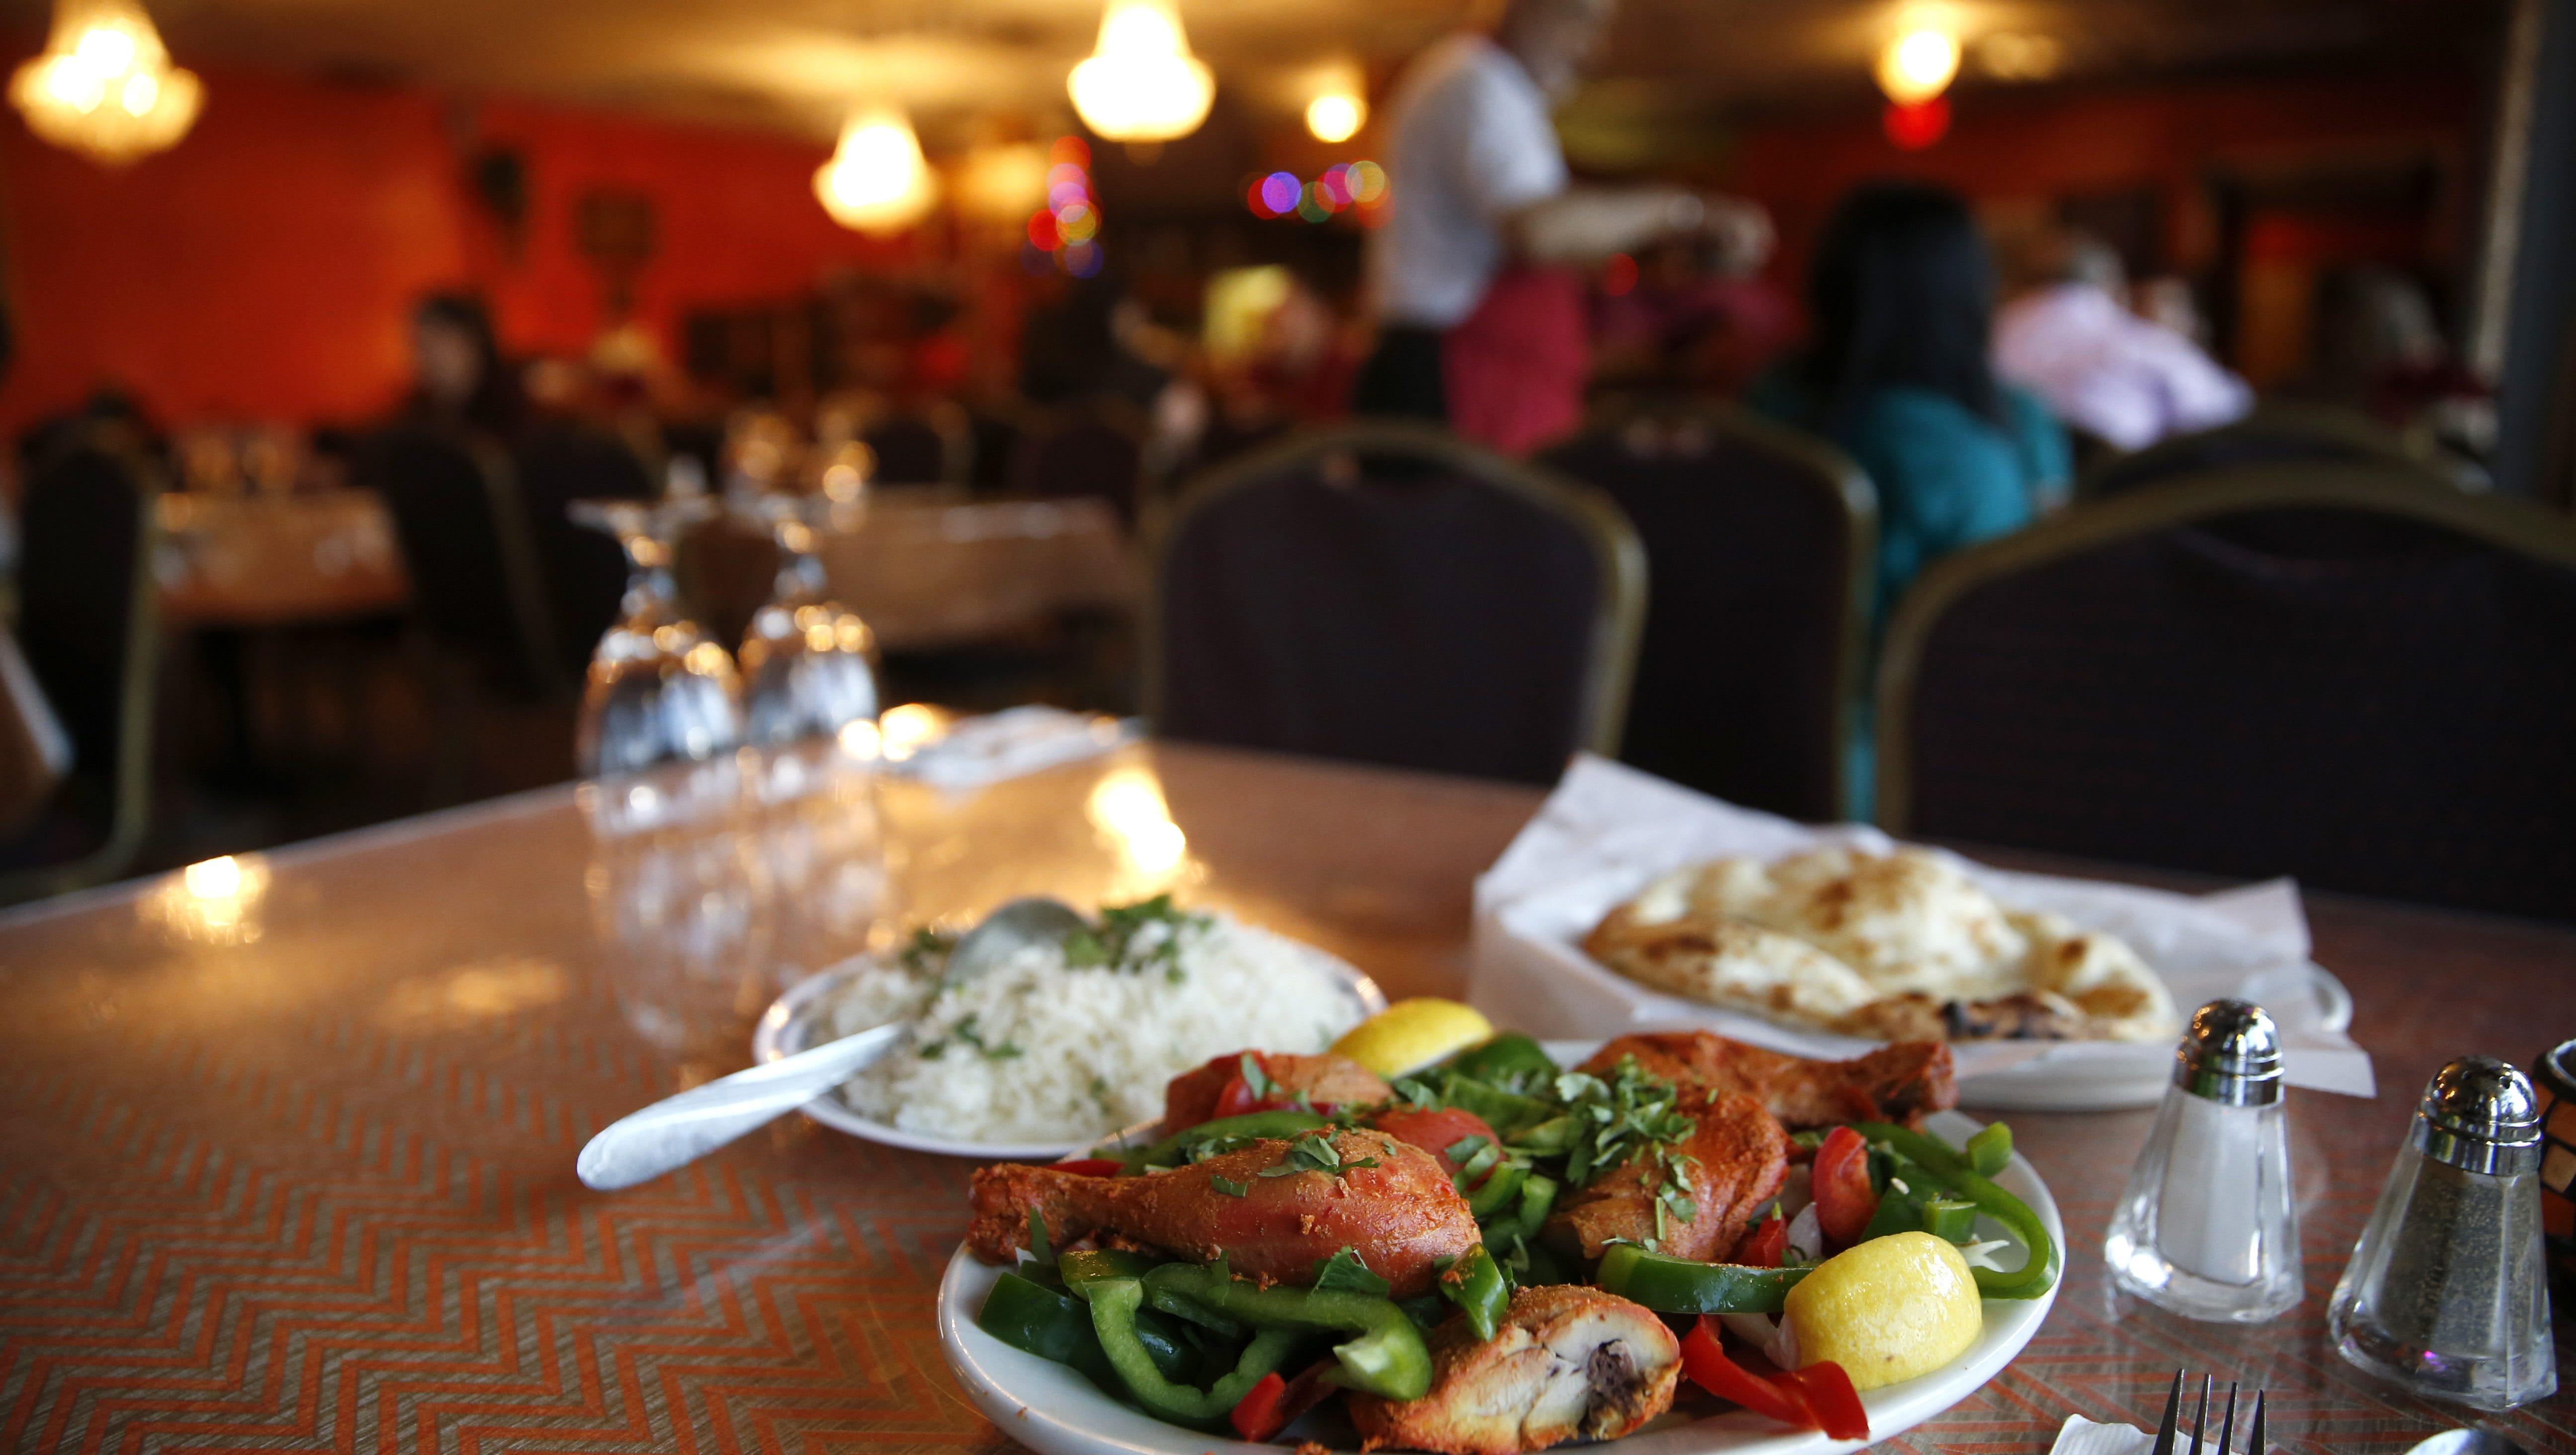 These Restaurants Offer Christmas Meals For Dining In Or Taking Out